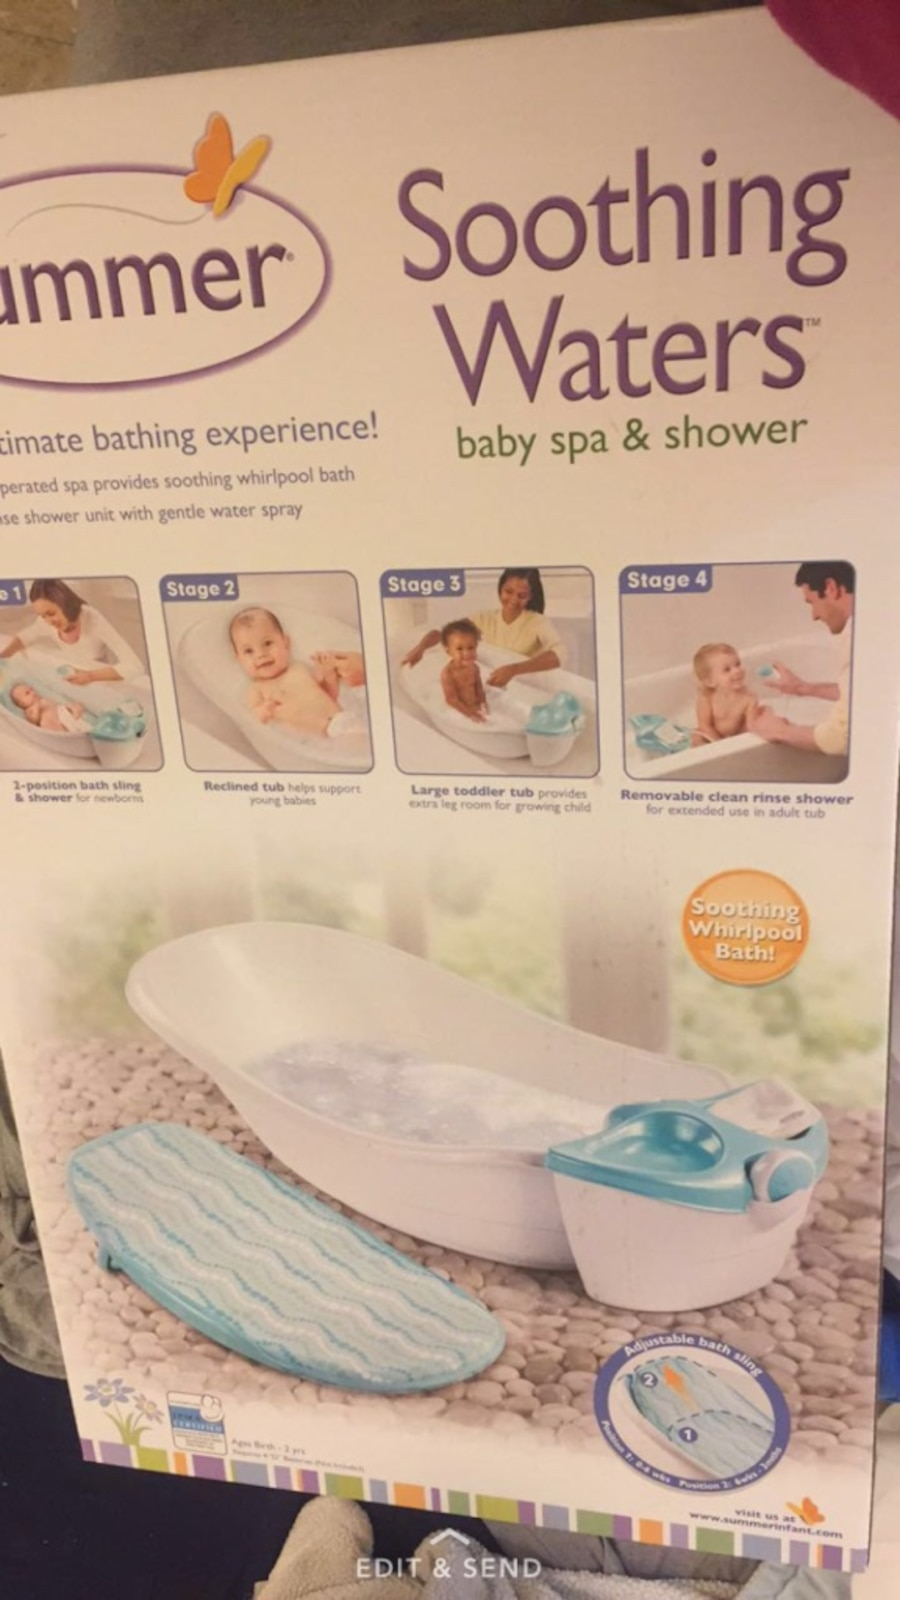 Summer Soothing Waters Baby Spa And Shower In Fall River Letgo